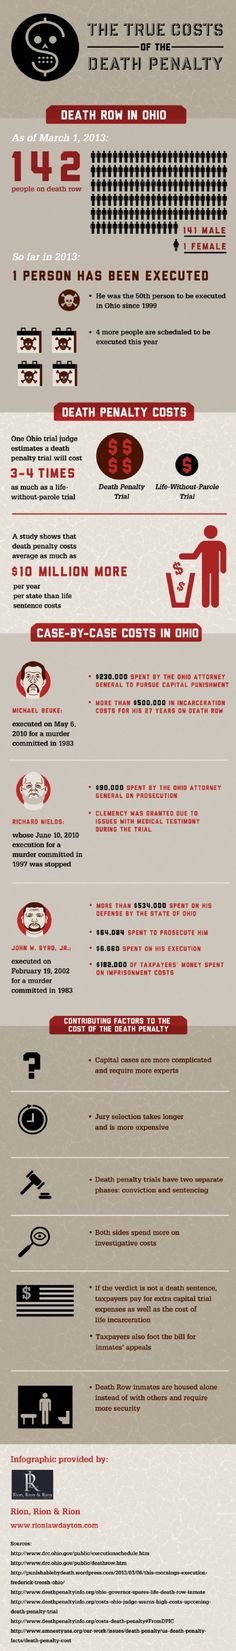 """The True Costs of the Death Penalty"" Infographic"